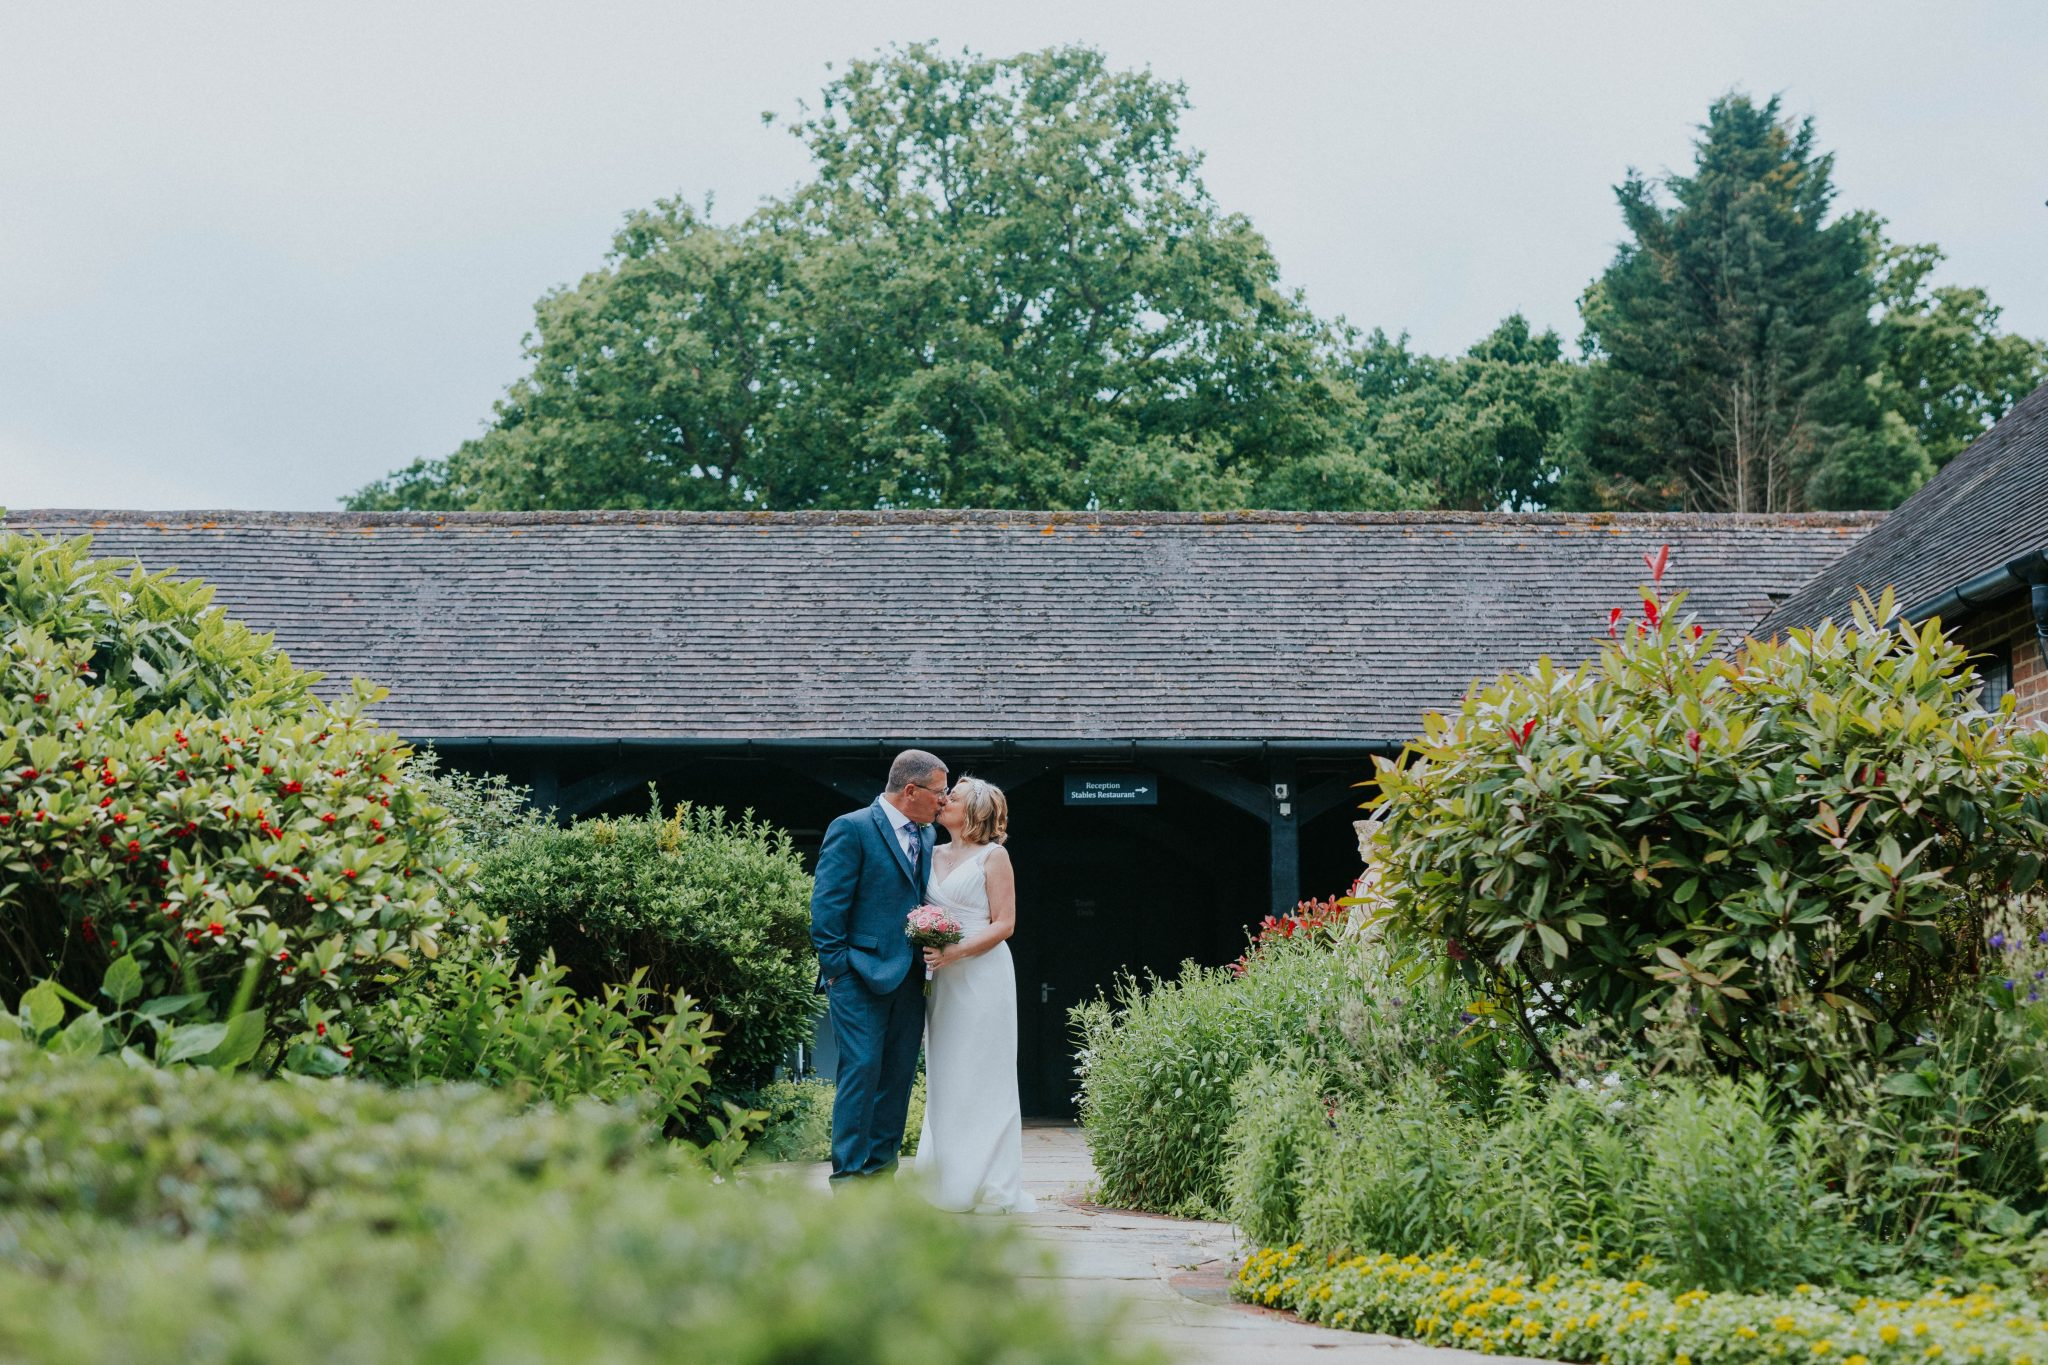 S Butler Photography - Sussex Wedding Photographer - A & G (Blog) 075